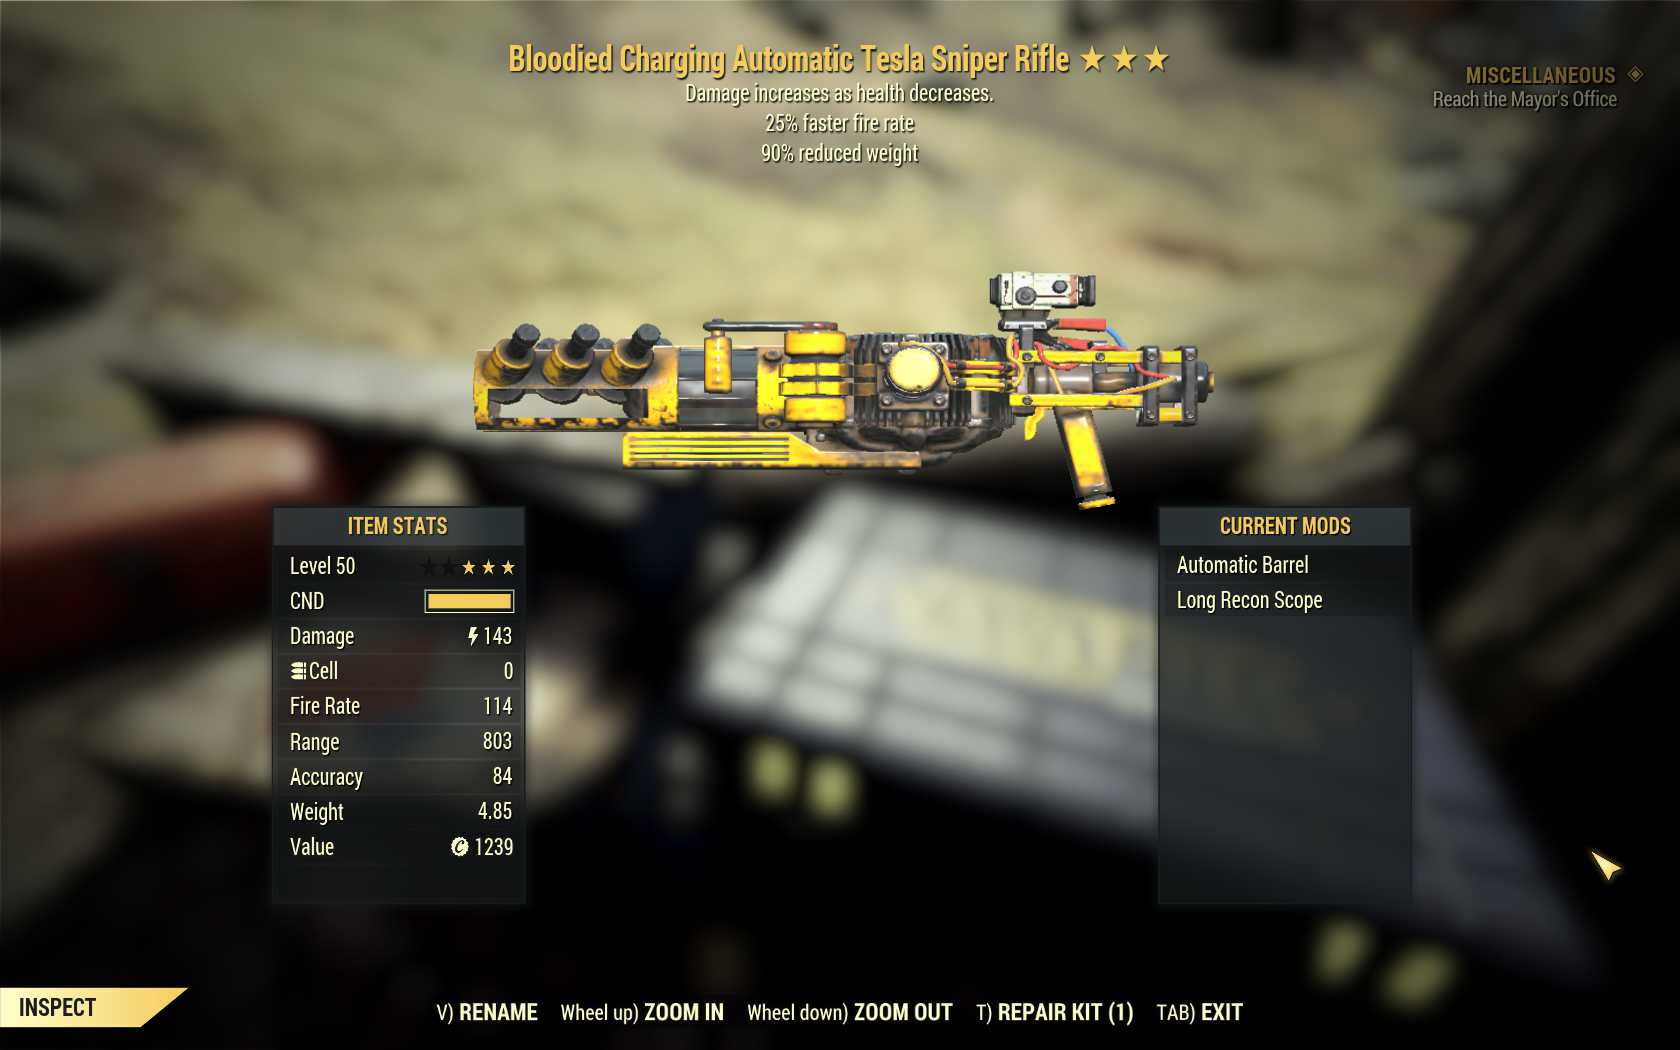 [Glitched weapon] Bloodied Tesla Sniper rifle (25% faster fire rate, 90% reduced weight)